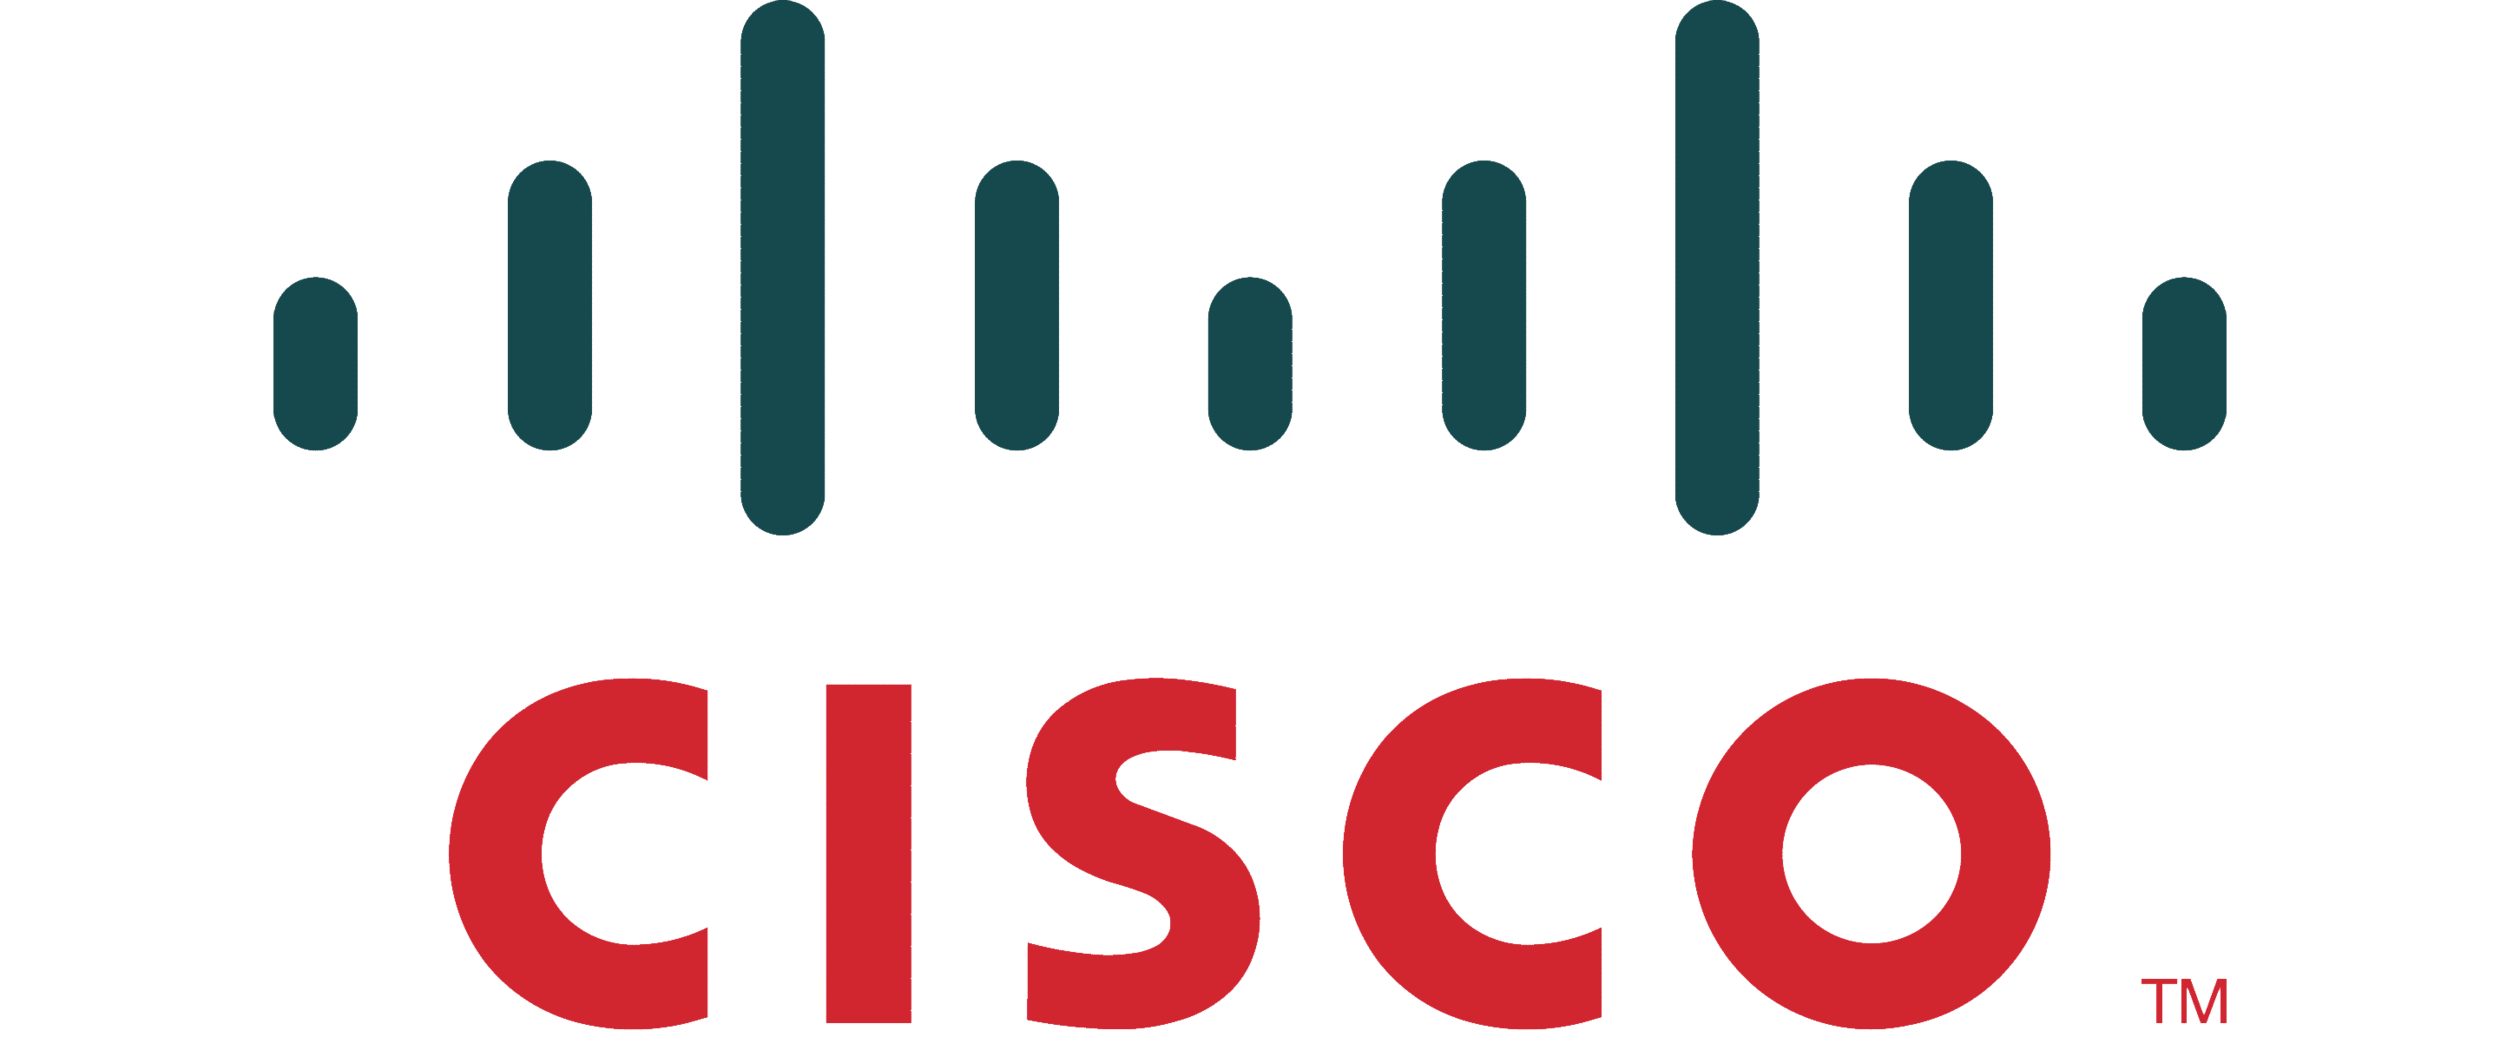 4cisco.png